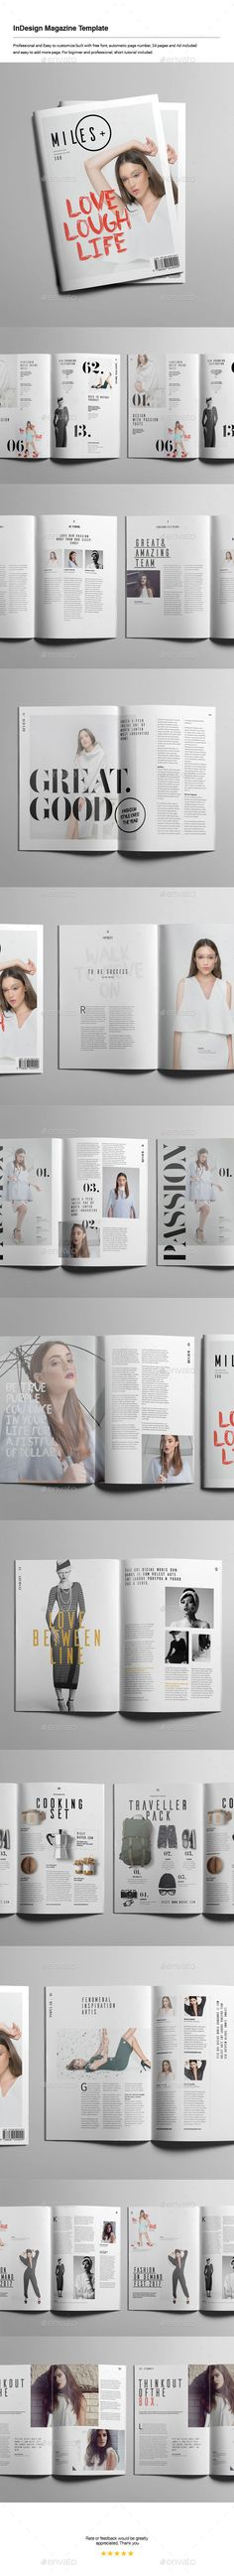 InDesign Magazine Template — InDesign INDD #stationery #guidelines • Available here → https://graphicriver.net/item/indesign-magazine-template/14312651?ref=pxcr